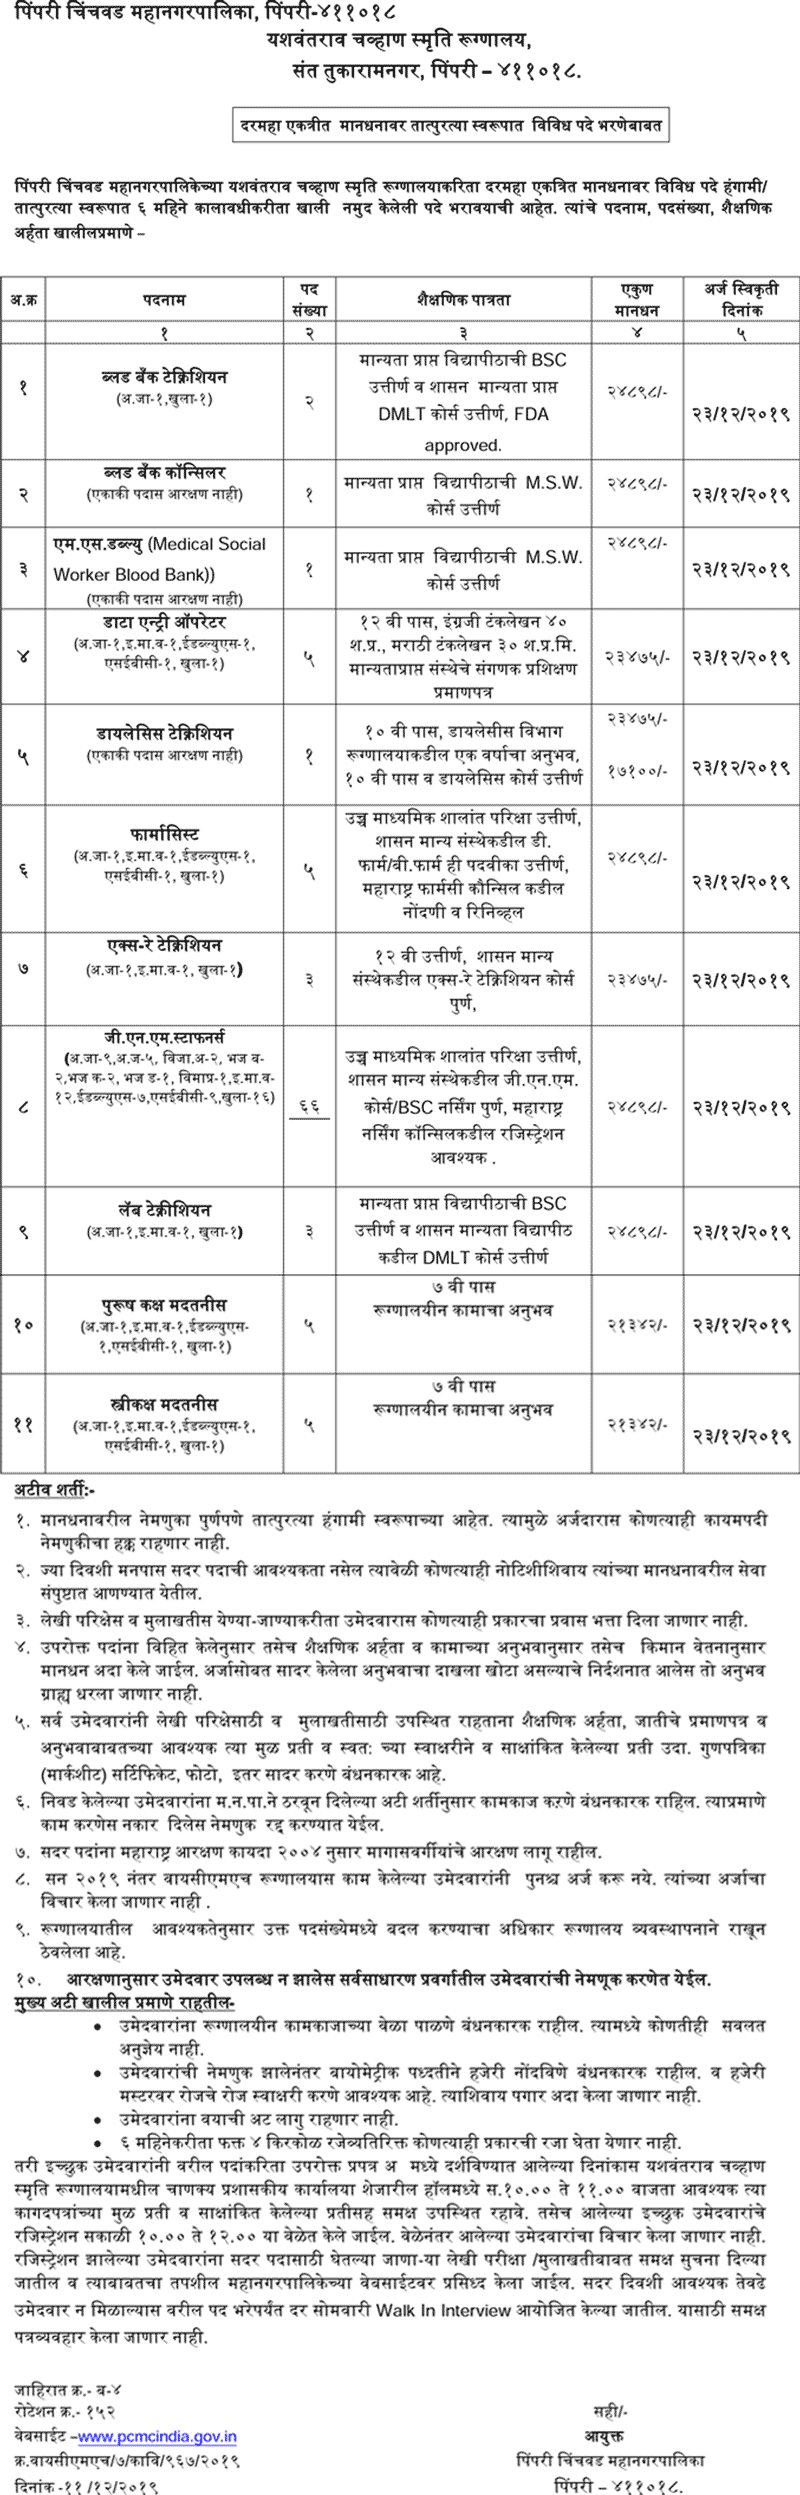 PCMC Recruitment 2019 | Jobs in pcmcindia.gov.in [pcmc.gov.in]